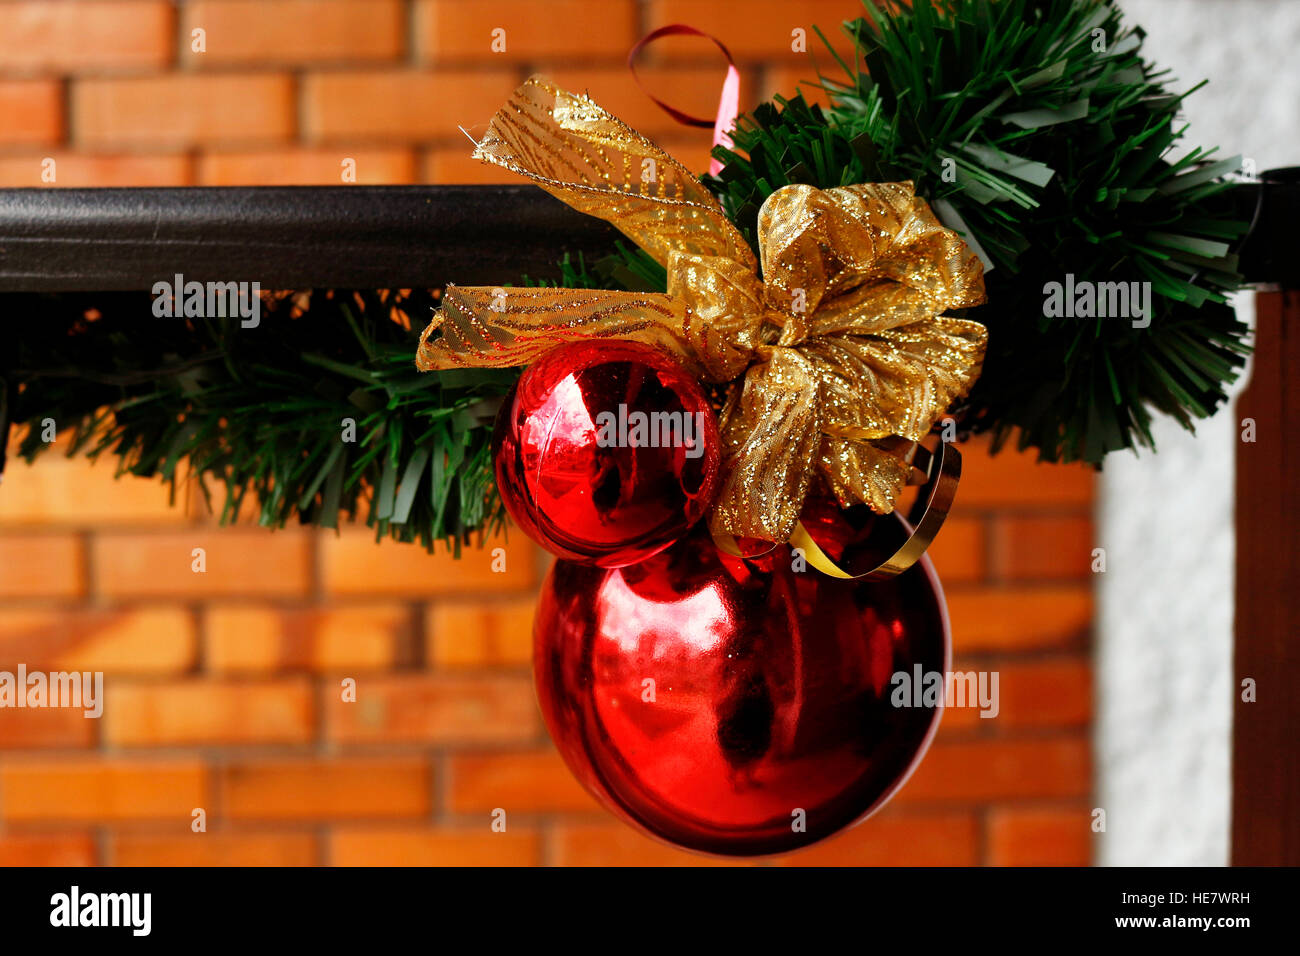 Christmas decoration. The custom of decorating trees is older than Christmas itself. - Stock Image